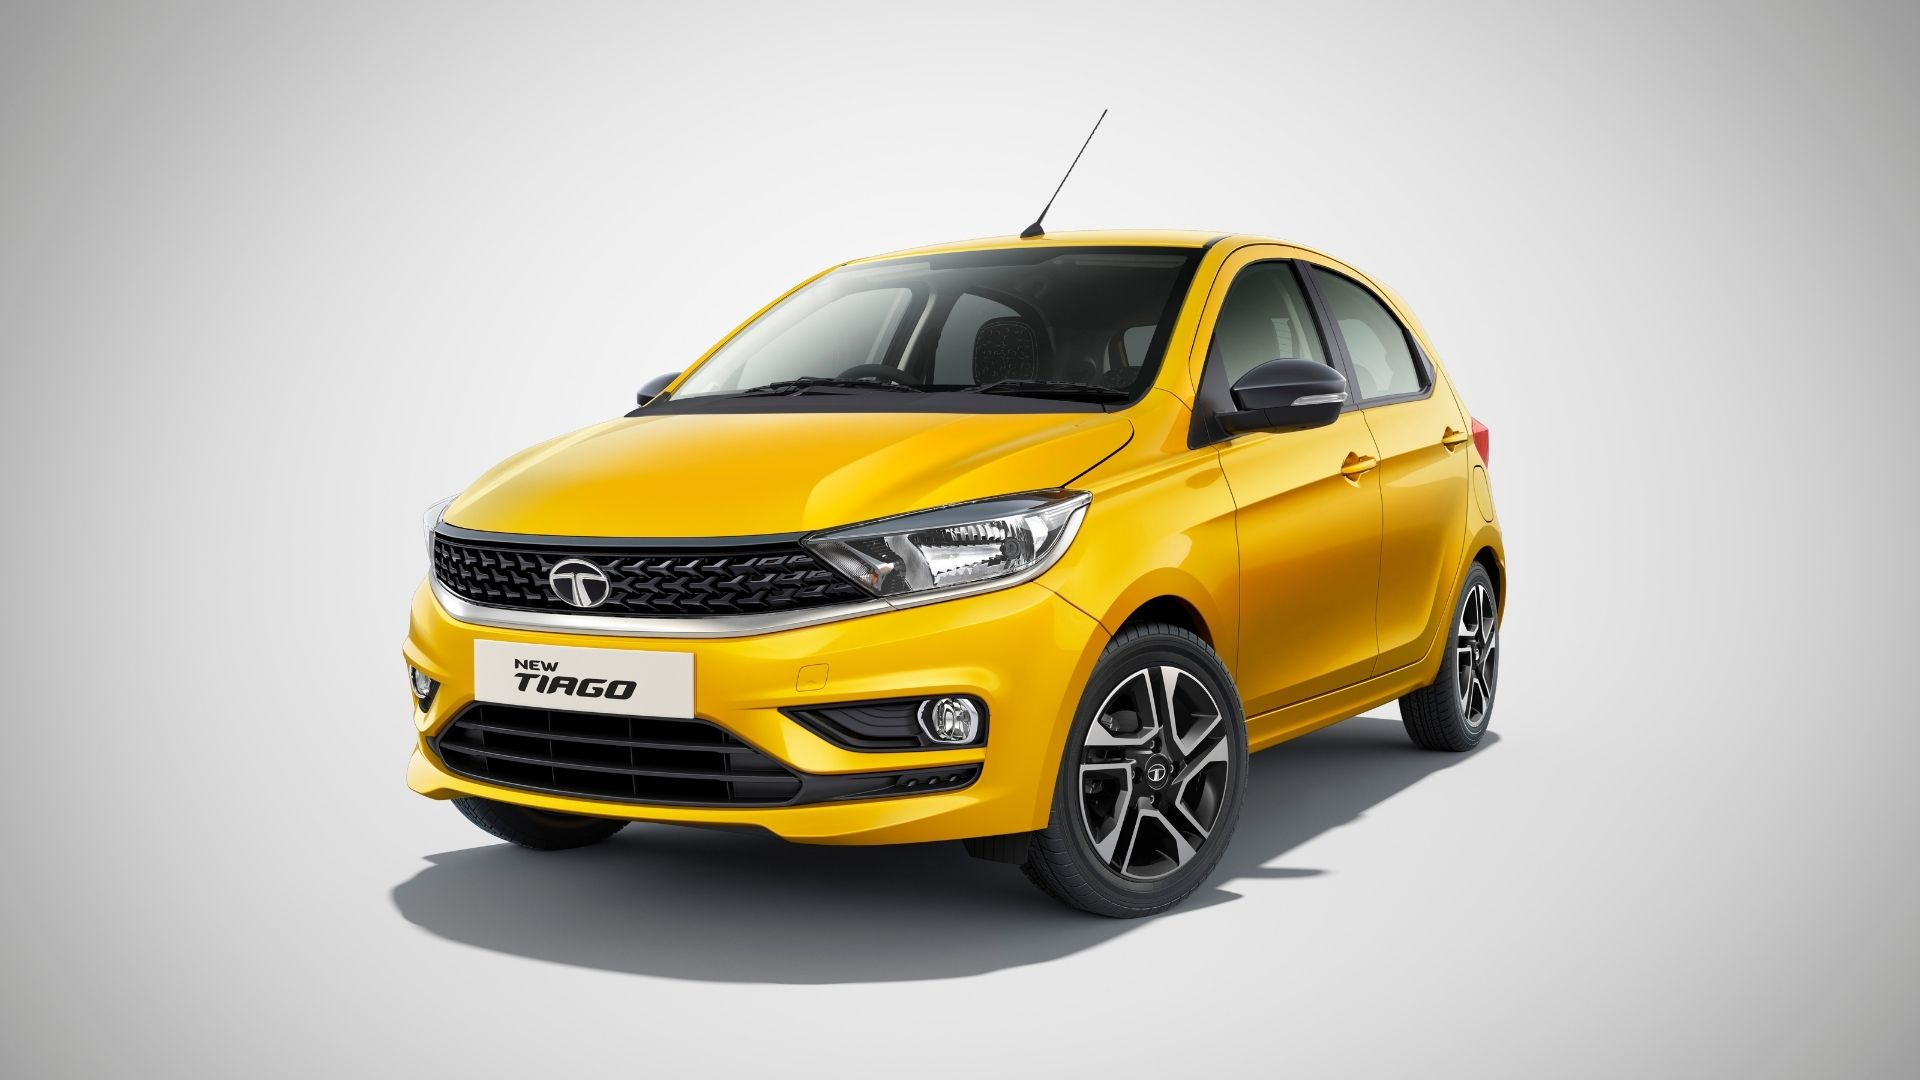 Tiago XTA Launched in India By Tata Motors